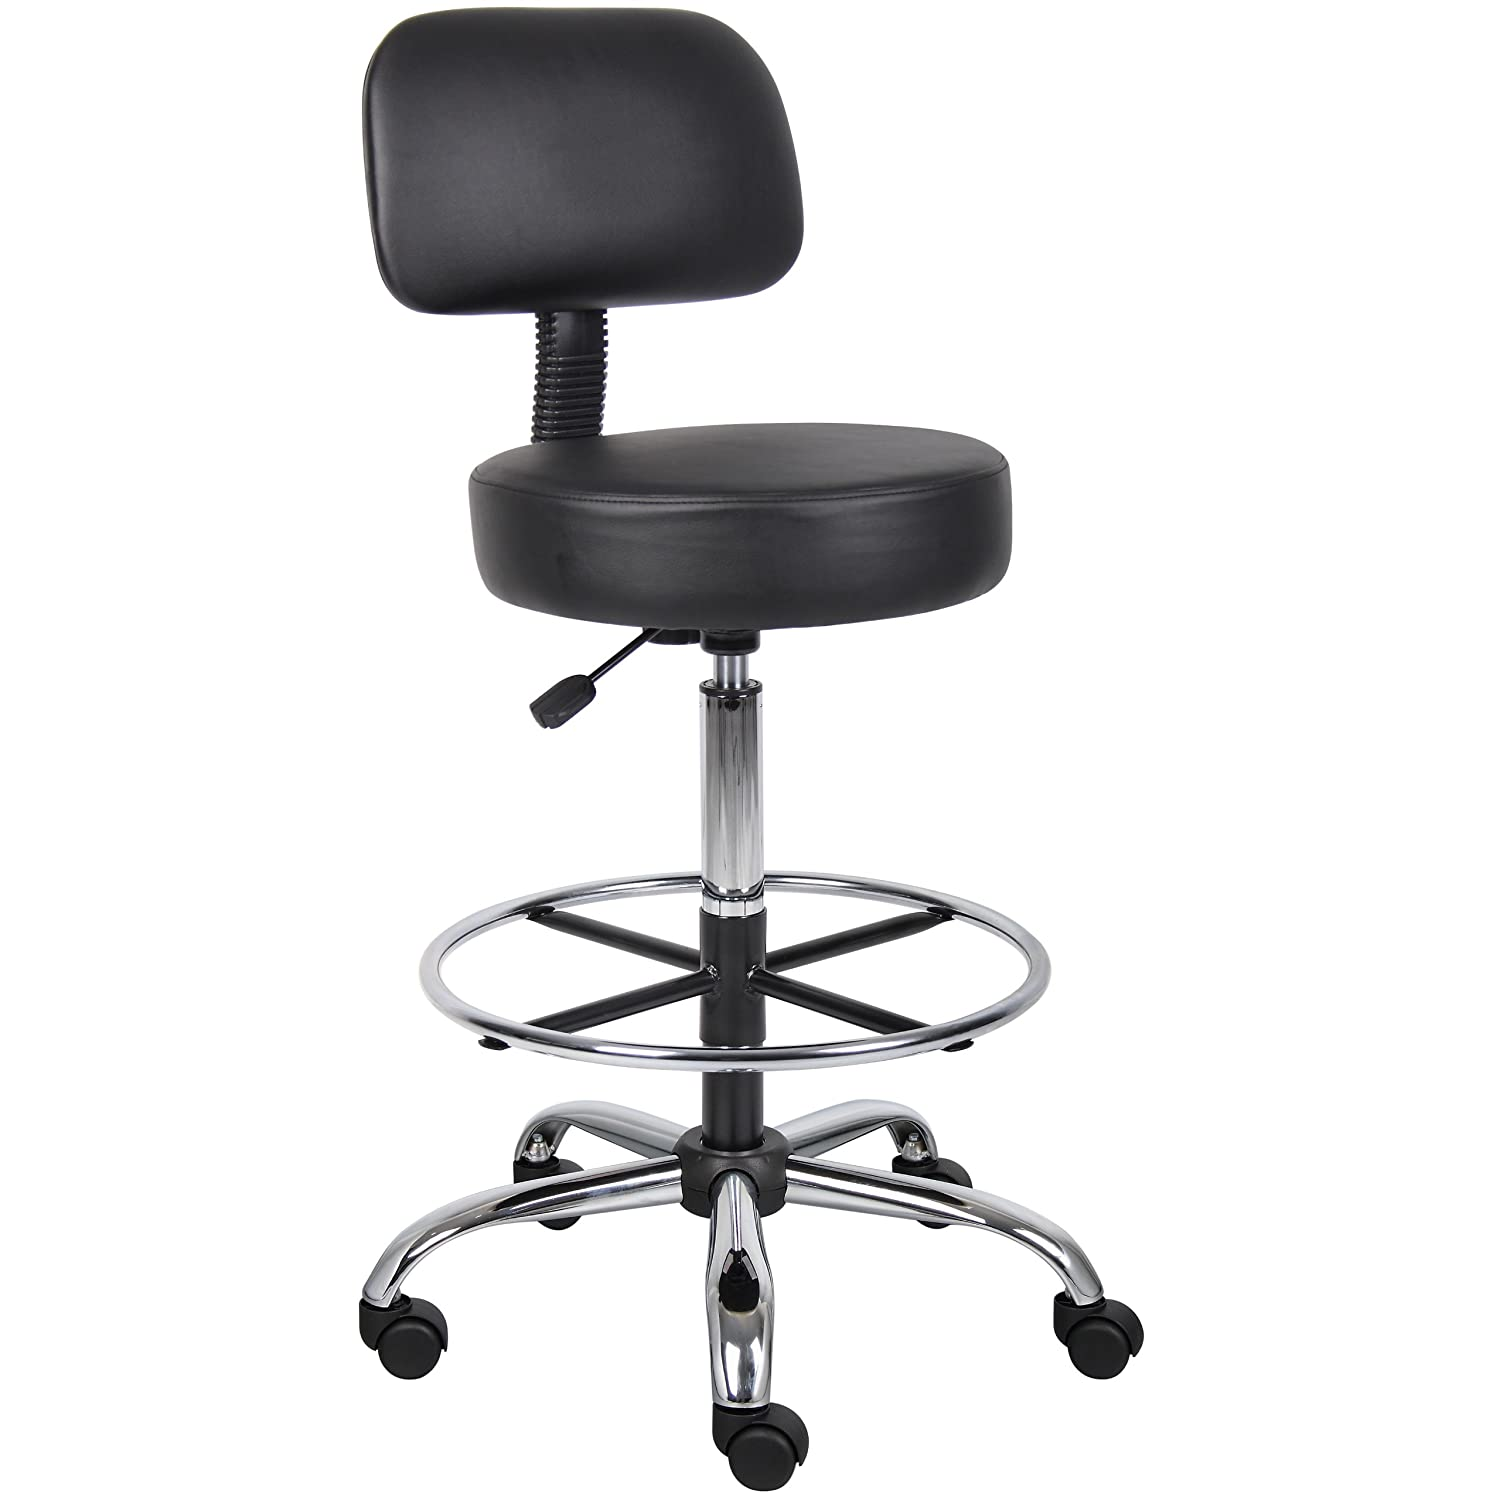 office table chairs boss small desk chairs on amazon room ornament bedroomstunning office chair drafting chairs